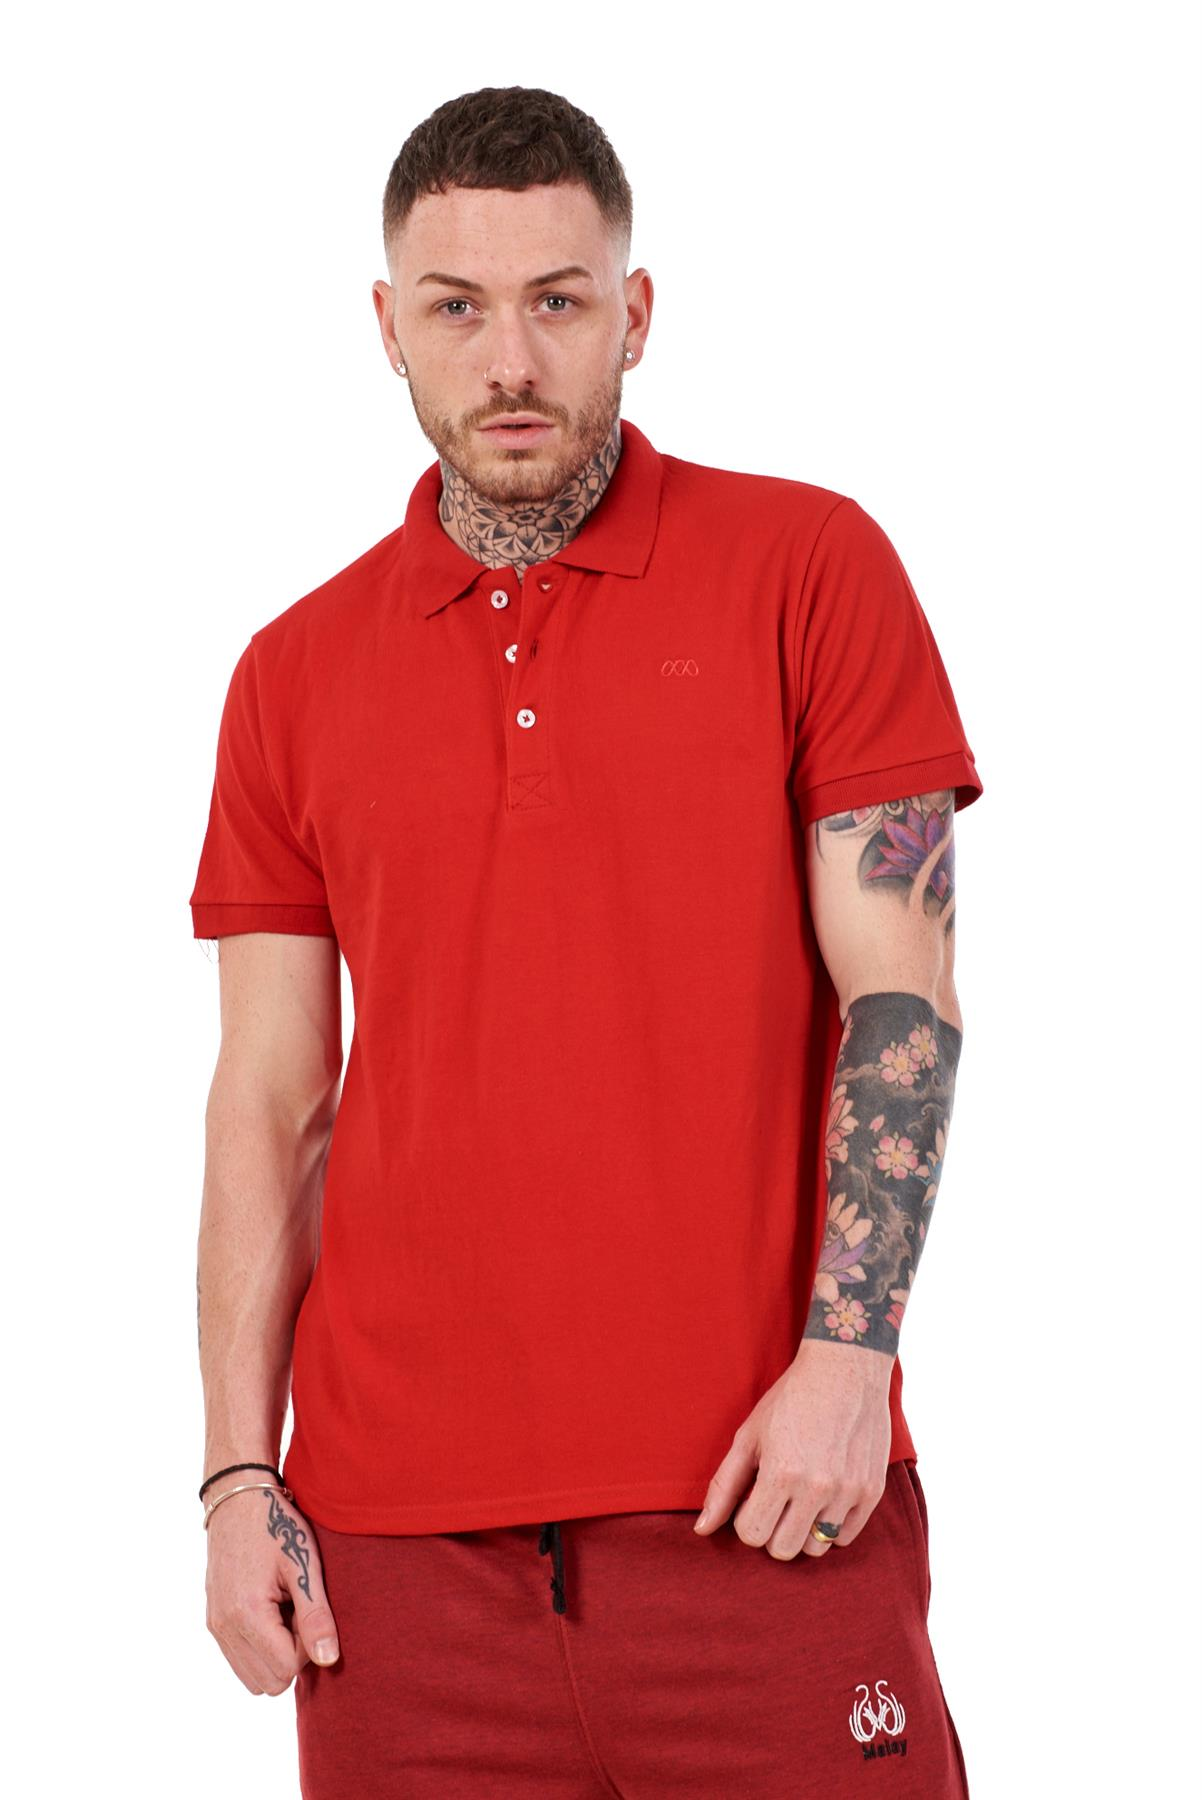 Mens-Plain-Solid-Polo-Cotton-T-Shirts-Regular-fit-Casual-Formal-Shirt-Top-M-XXL thumbnail 31